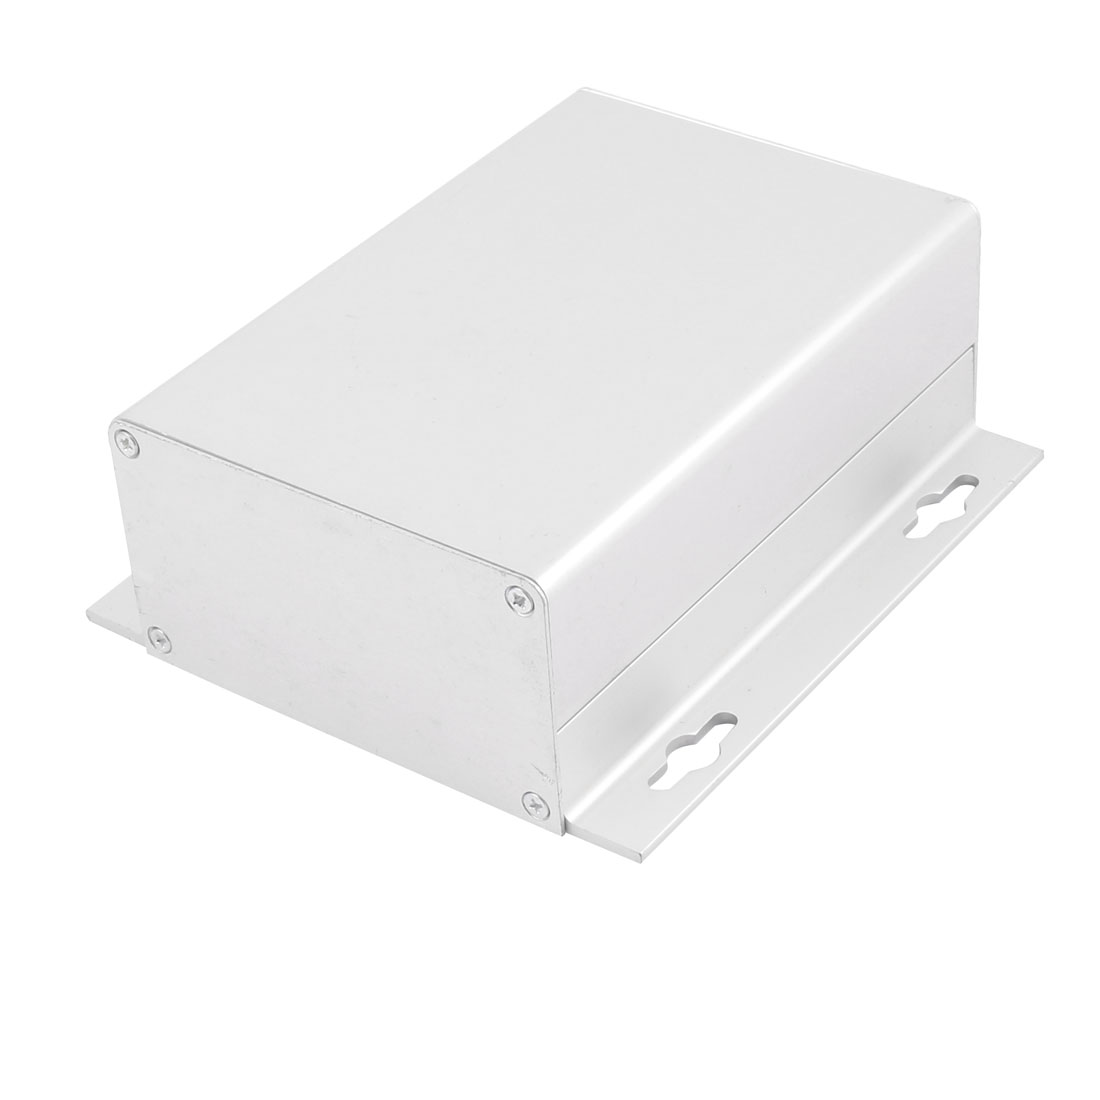 50x119.6x130mm Multi-purpose Electronic Extruded Aluminum Enclosure Case Silver Tone